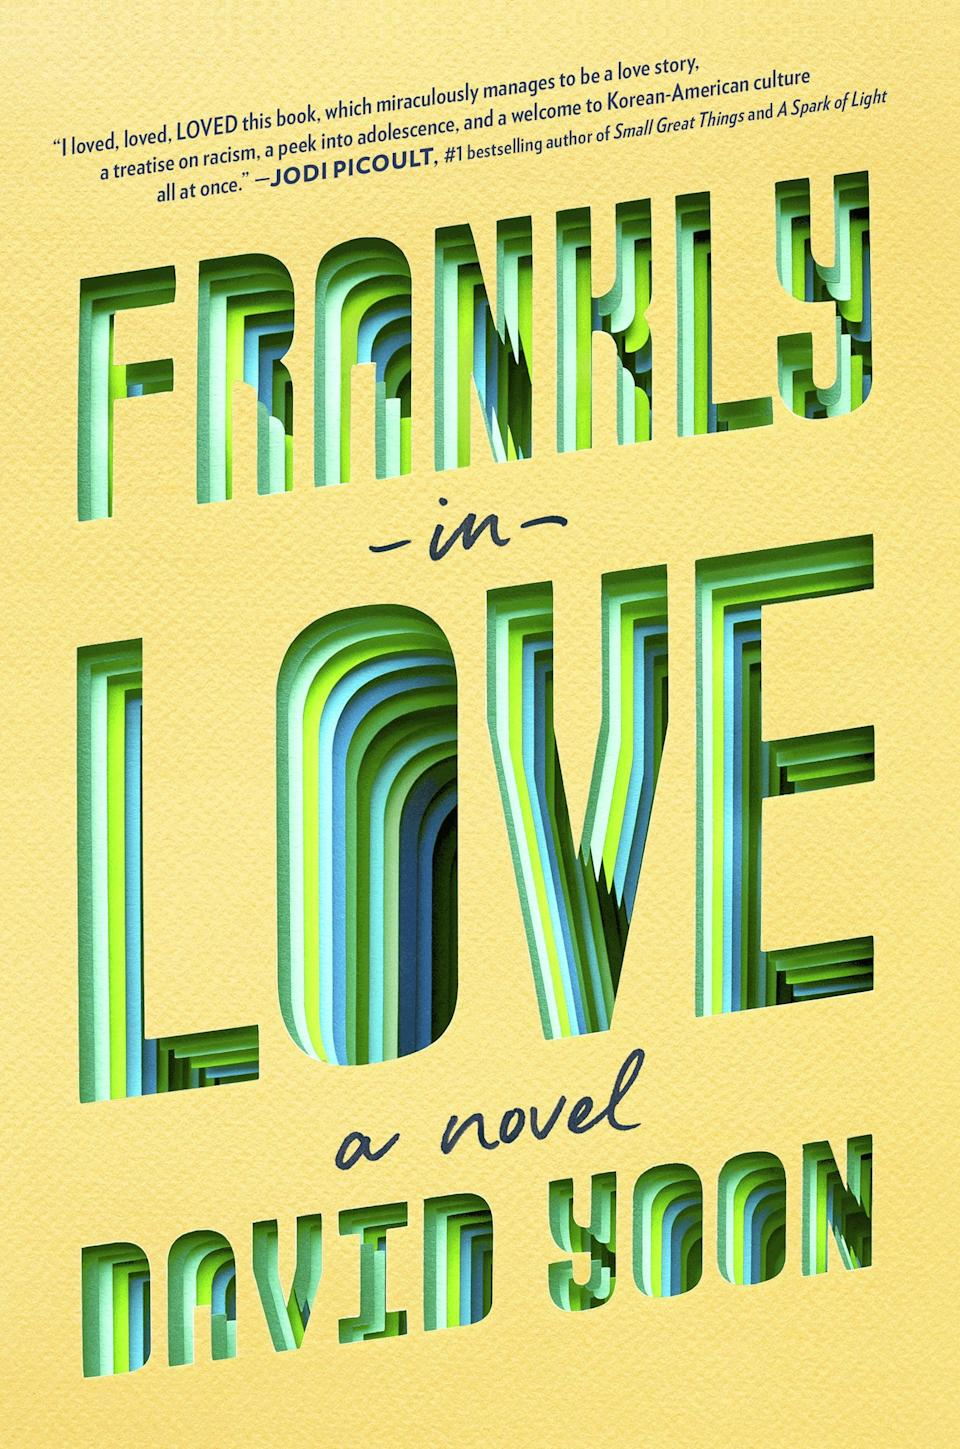 <p>Frank Li has a problem when <strong><span>Frankly in Love</span></strong> by David Yoon begins. He's found the girl of his dreams, Brit - but she's white, and his Korean-American family expects him to end up with a girl from the same background. Desperate, Frank turns to his friend Joy, who's facing a similar predicament, and the two agree to an arrangement to throw their parents off. Of course, nothing works as smoothly as they'd hoped, and Frank is soon faced with more questions than answers about what love really means.</p>